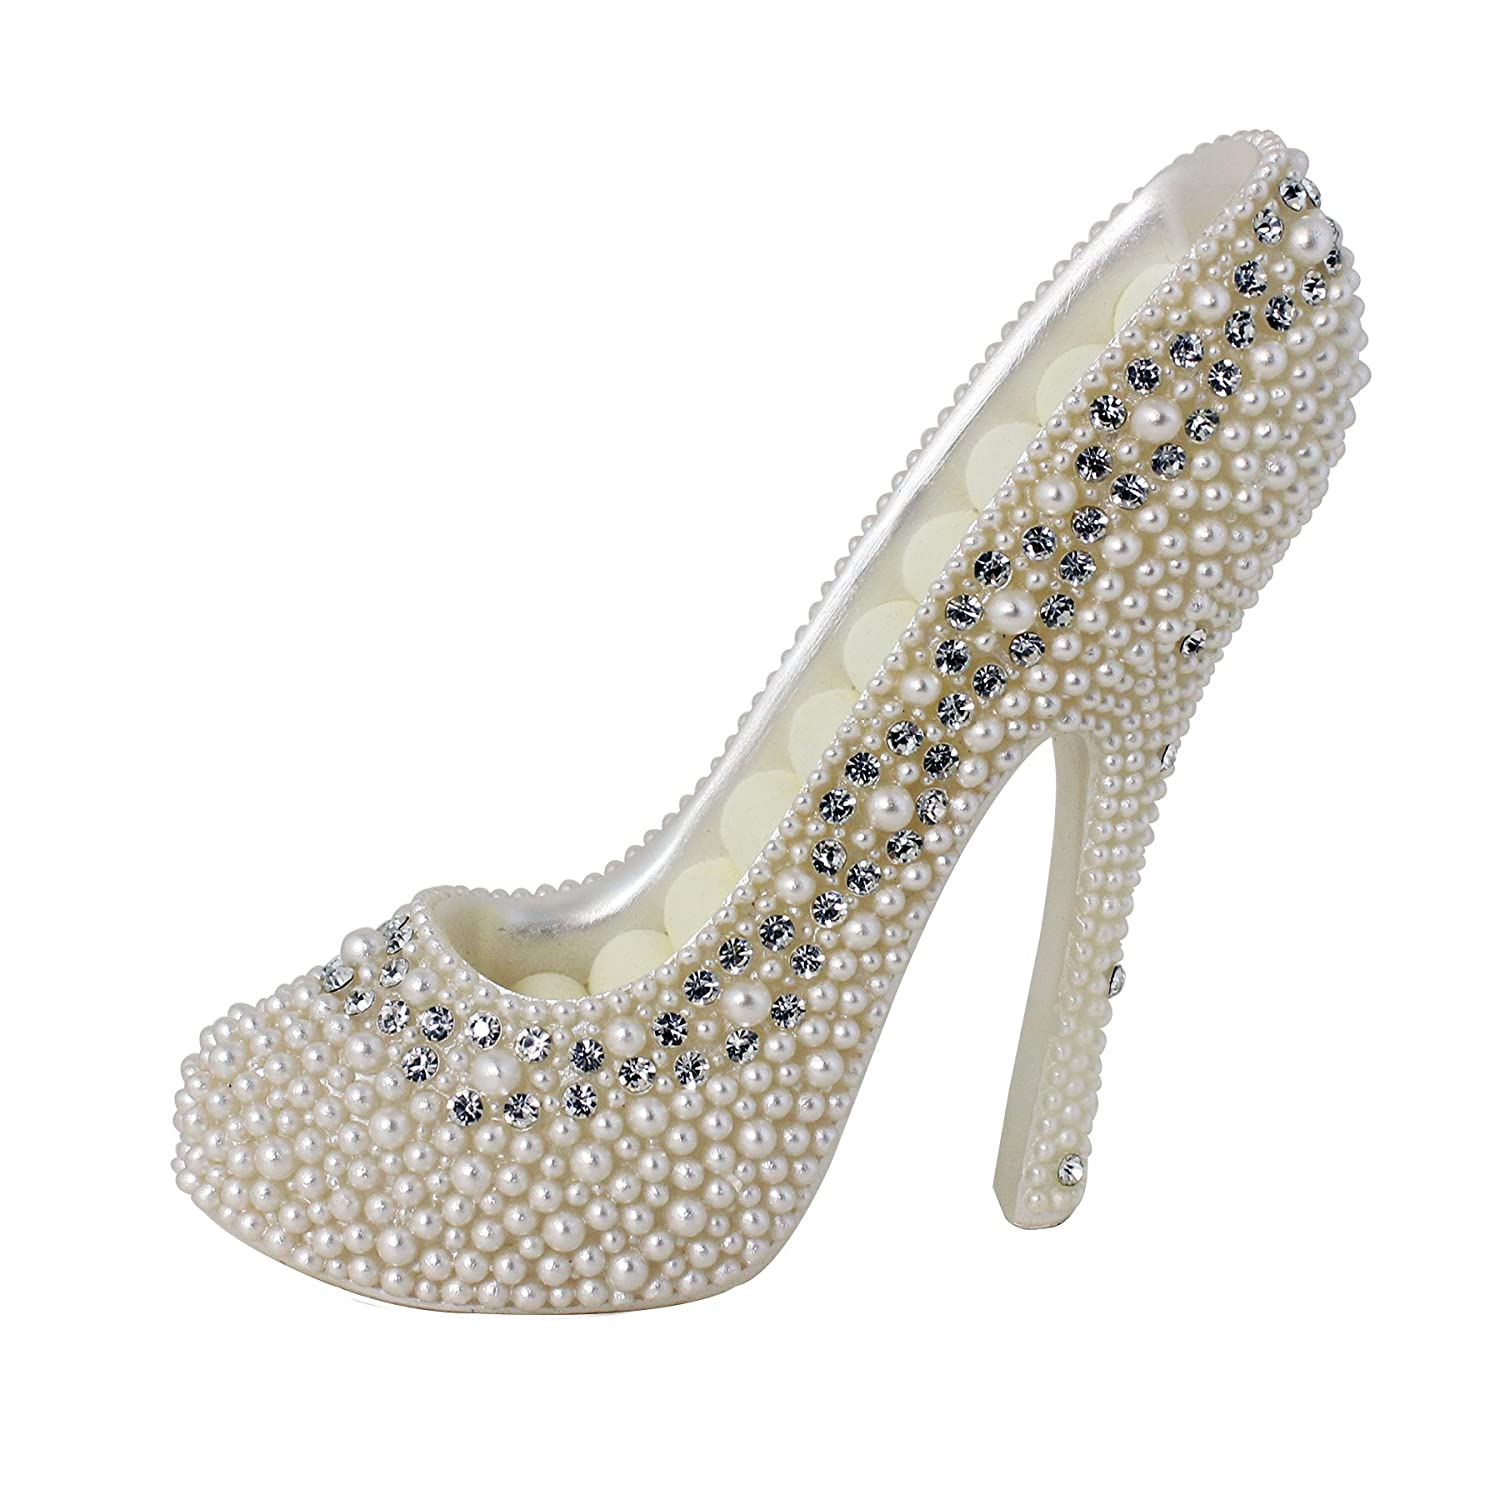 JewelryNanny 8-Ring Shoe Lovers' Simulated Pearl Crystal High Heel Ring Holder Shoe, White 14575-01